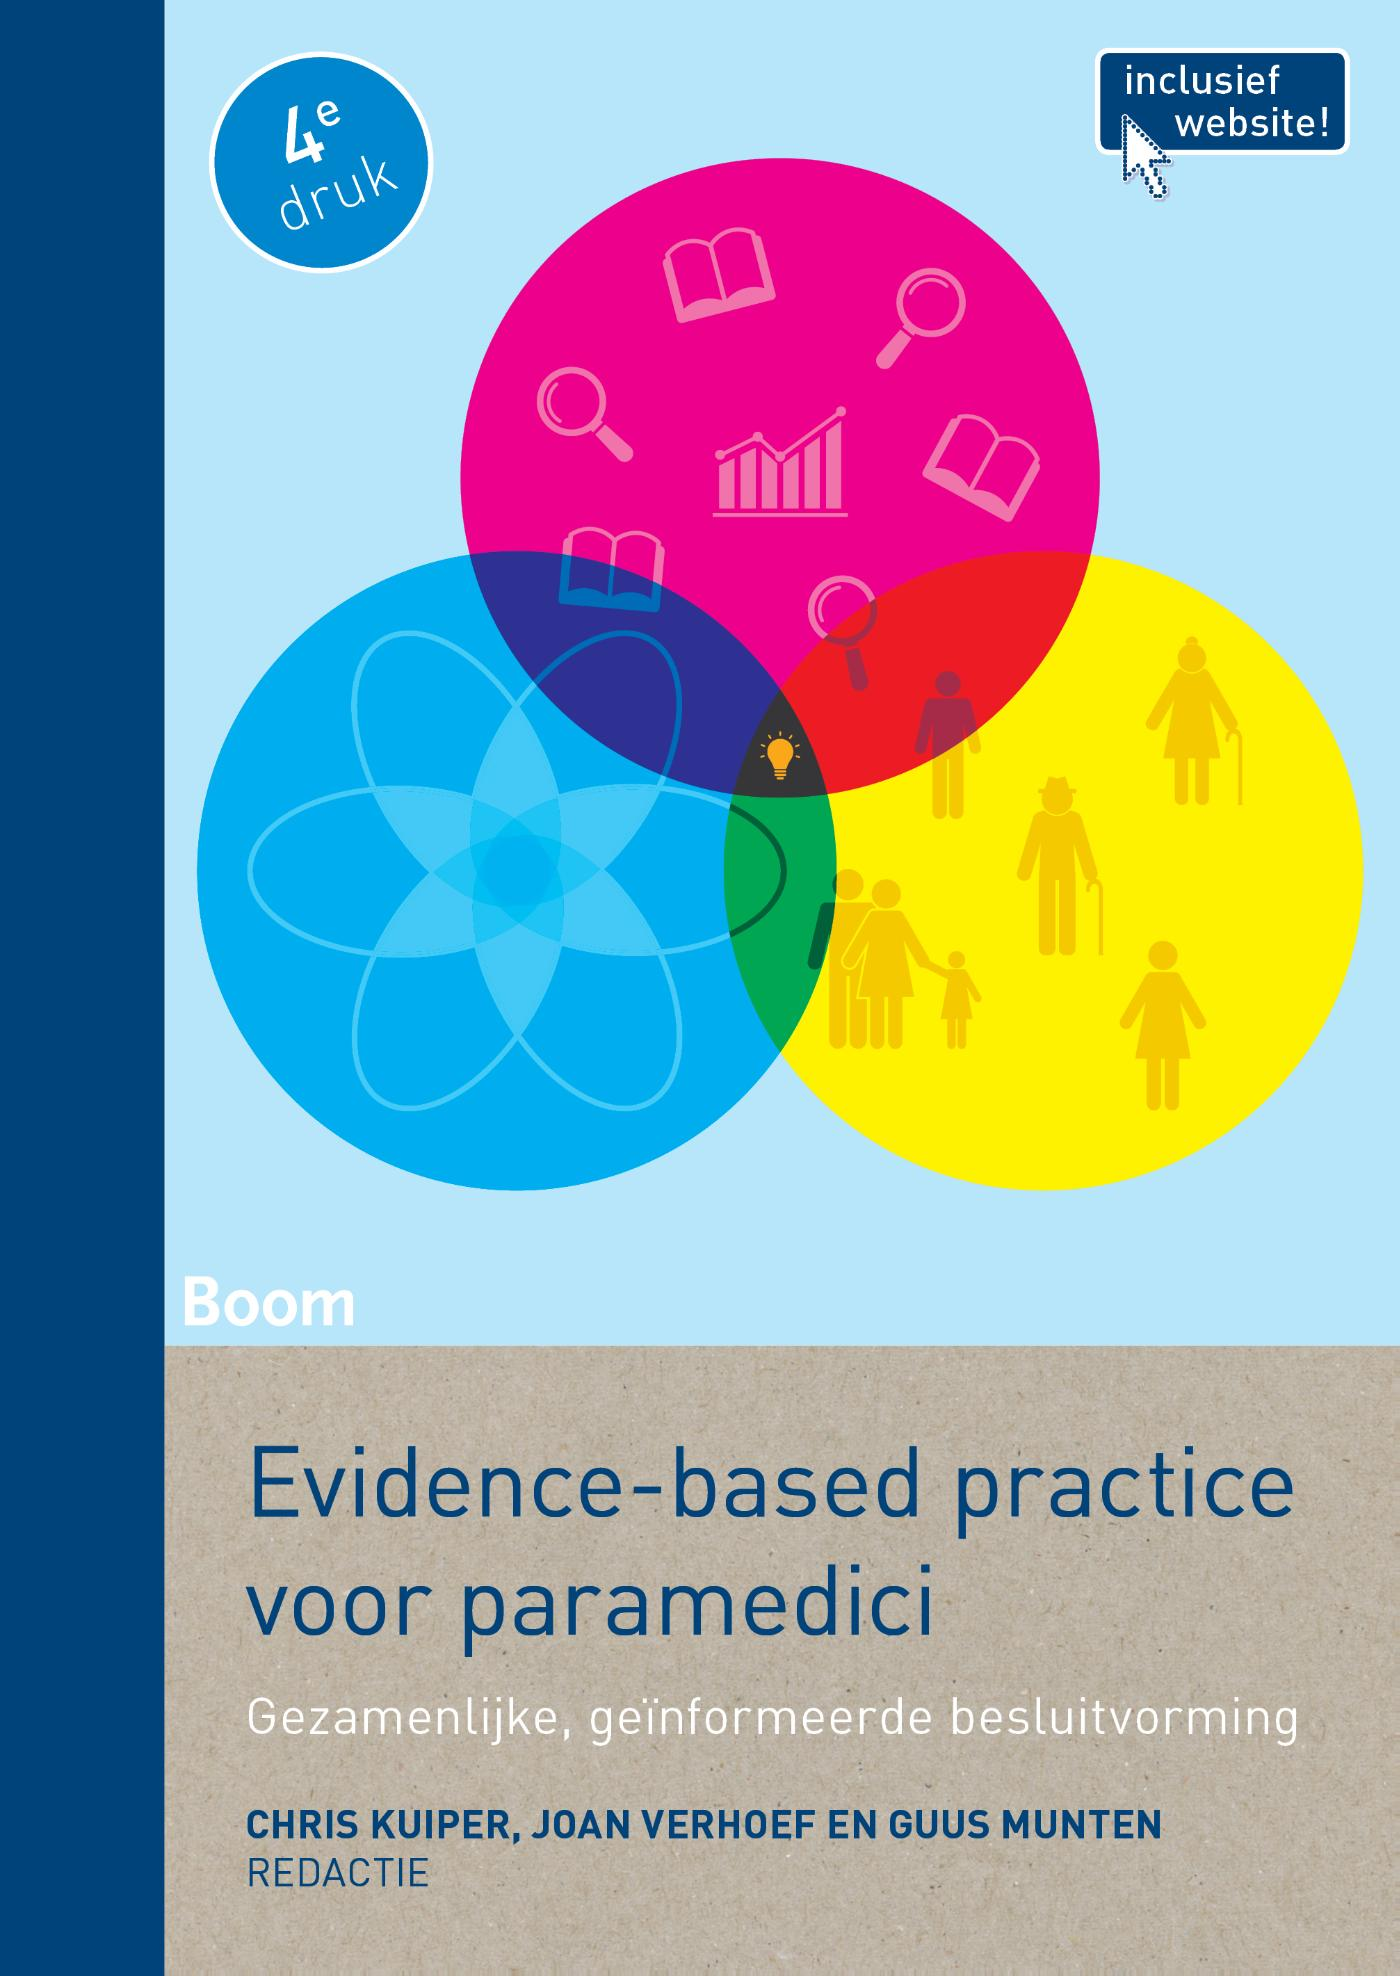 Evidence-based practice voor paramedici